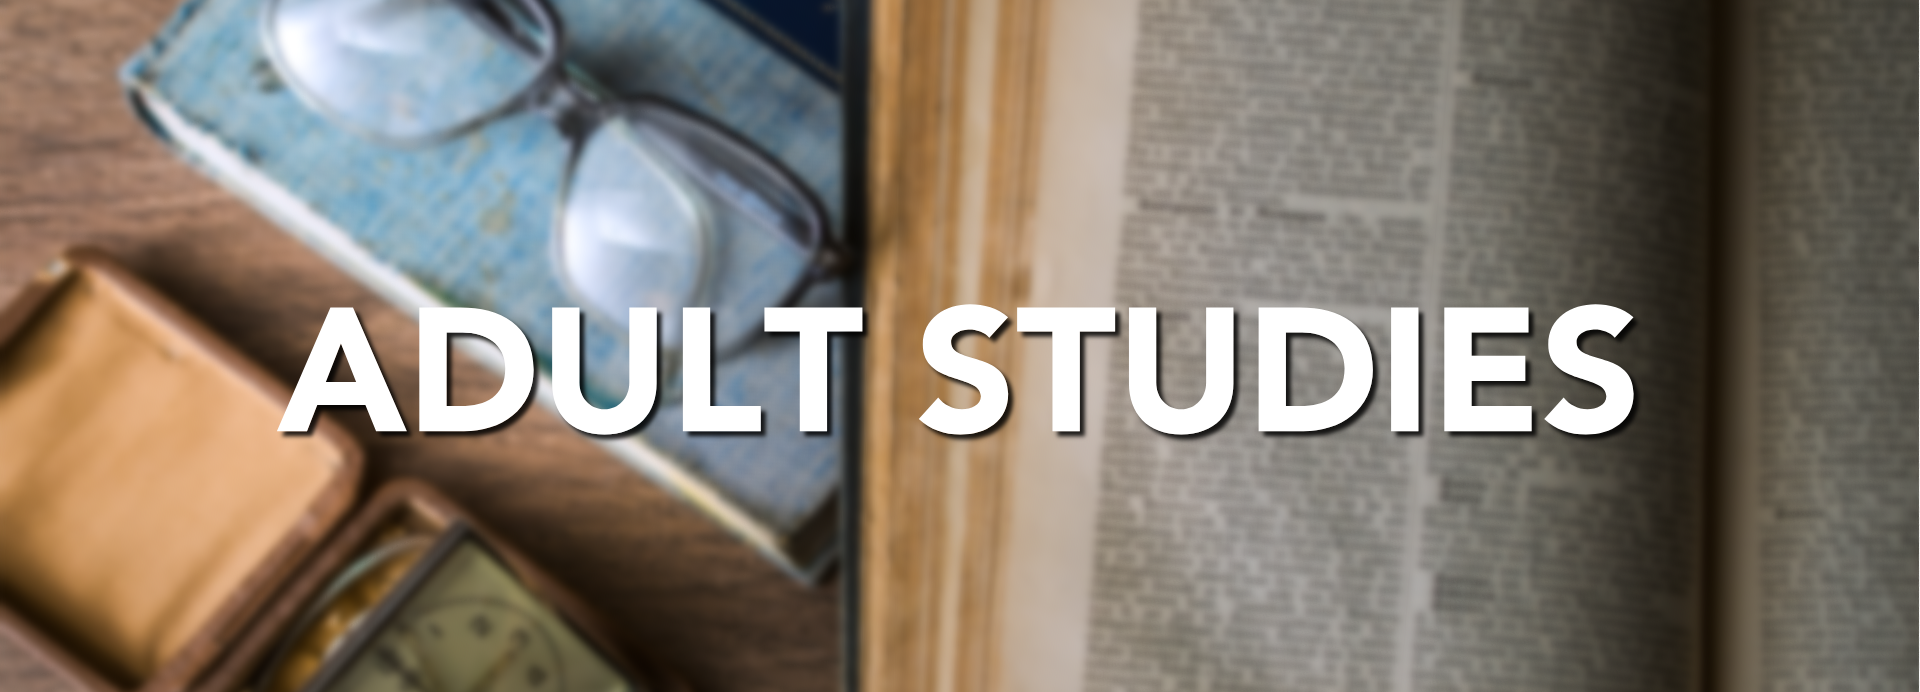 Adult Studies Banner.png